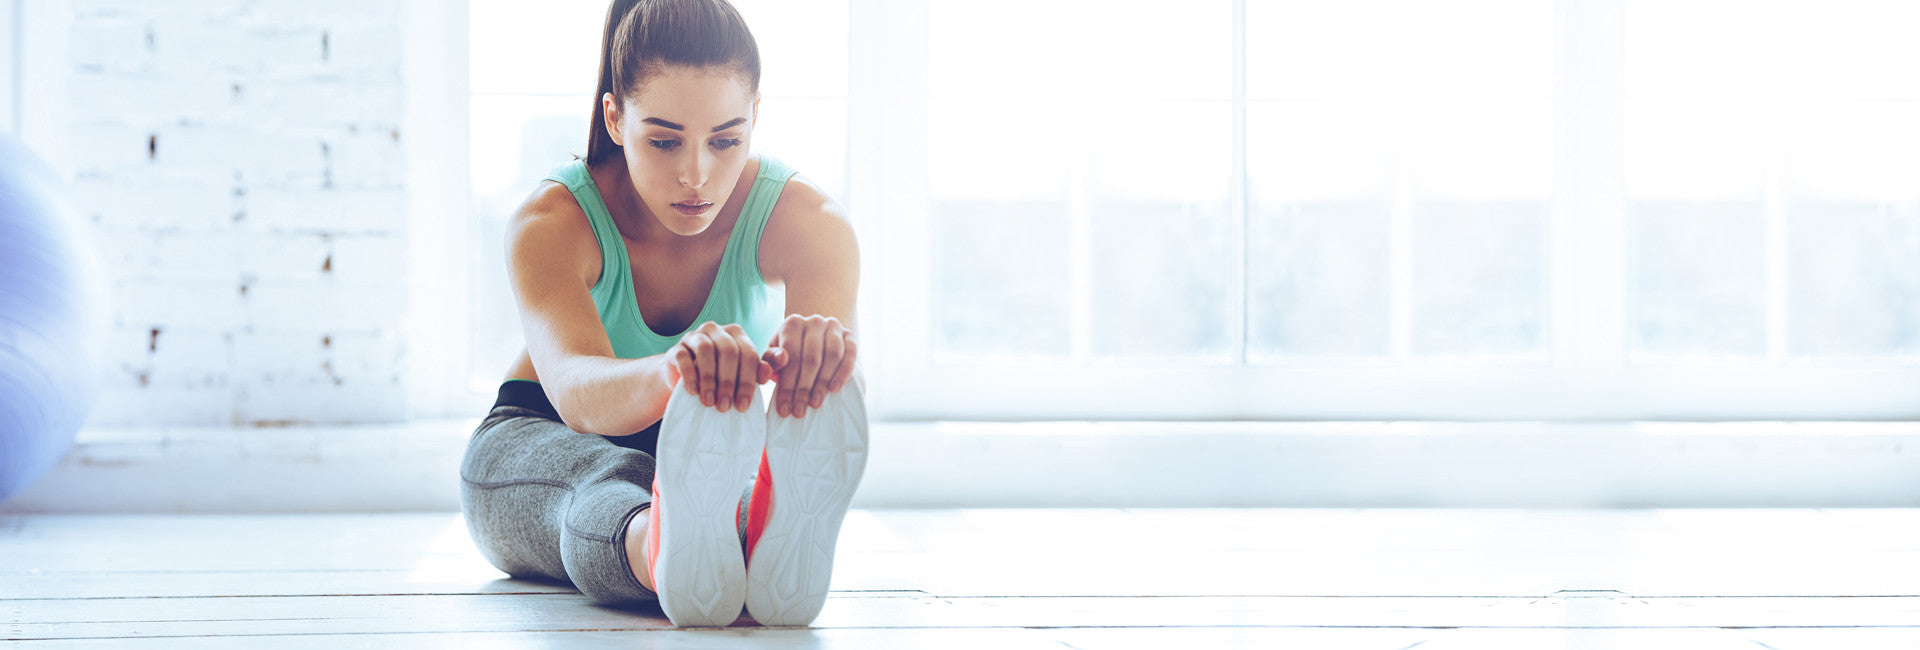 4 tips to keep your health game strong